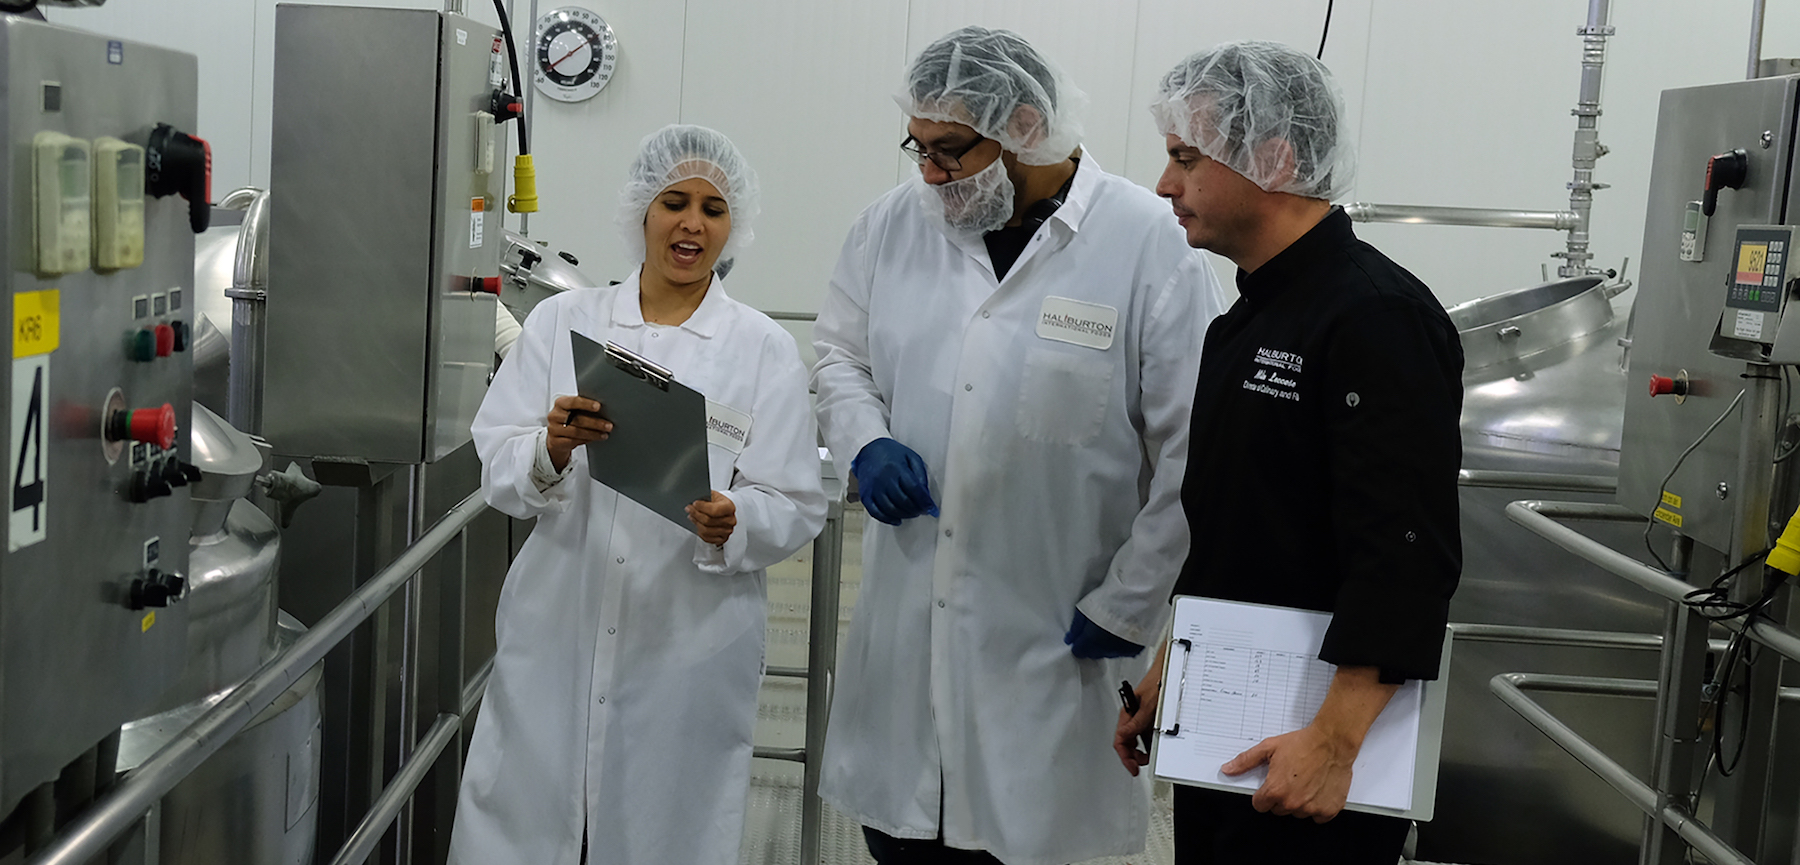 Haliburton Commercialization team conducting new product trials